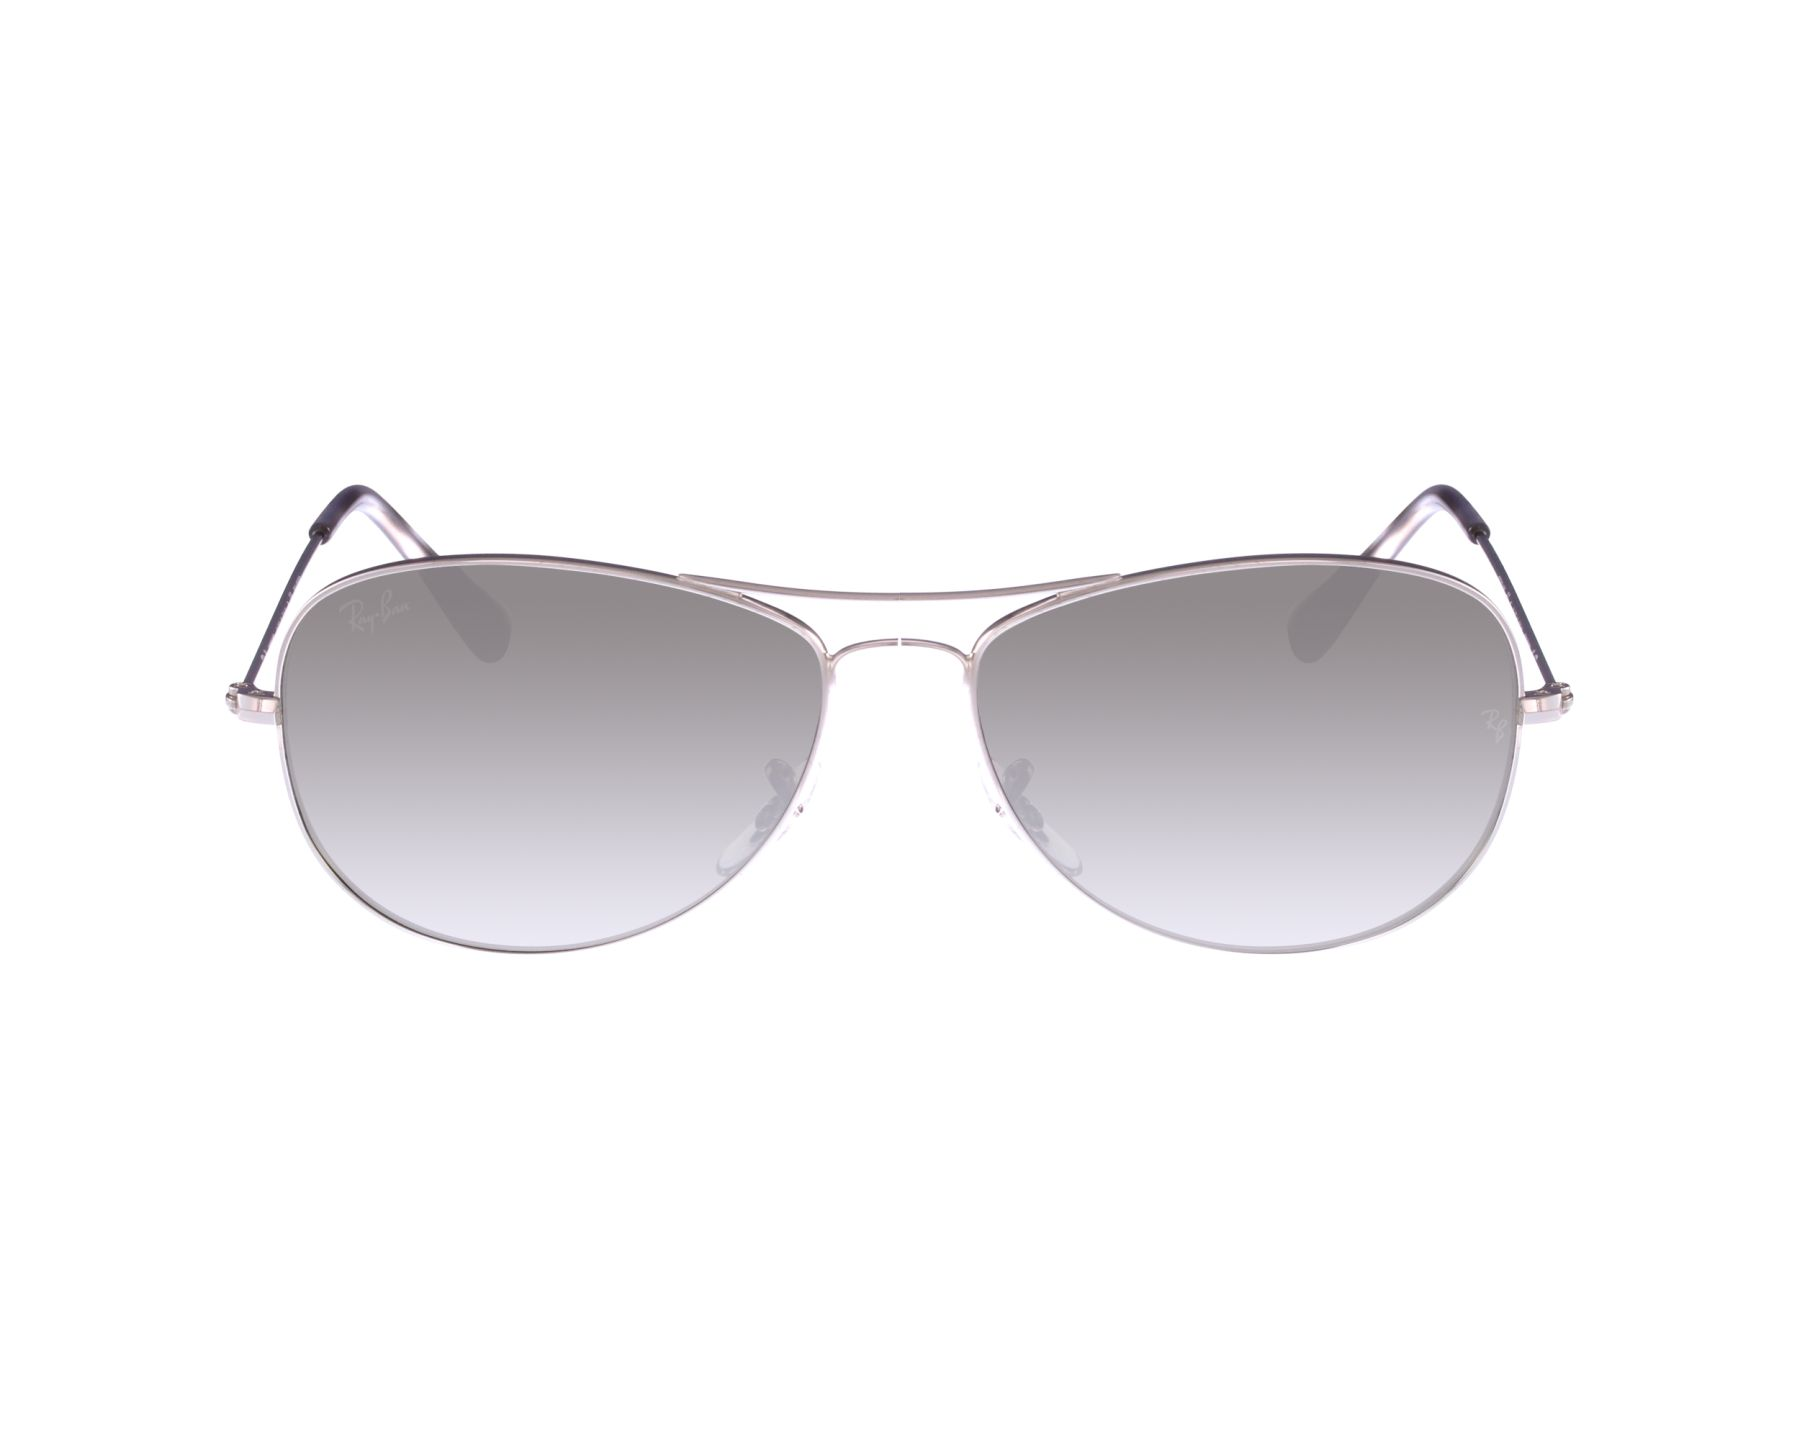 2aca857fd5 thumbnail Sunglasses Ray-Ban RB-3562 003 5J - Silver profile view